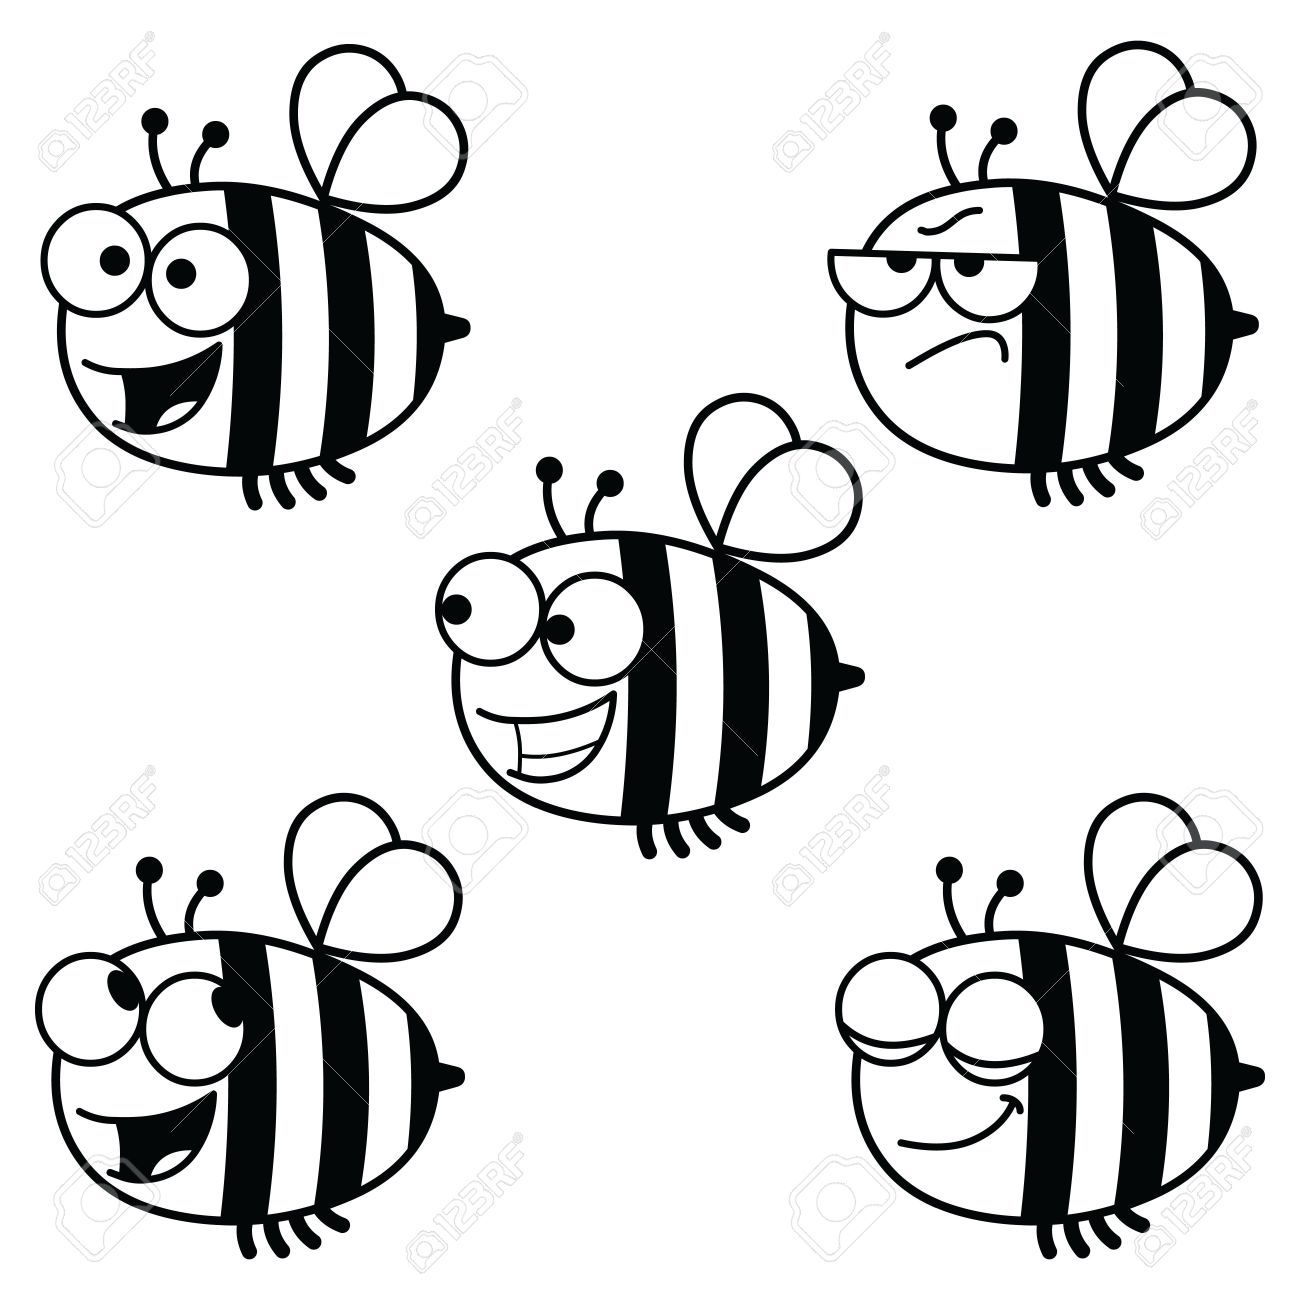 Bee black and white clipart clipart freeuse stock Bees black and white clipart 5 » Clipart Portal clipart freeuse stock